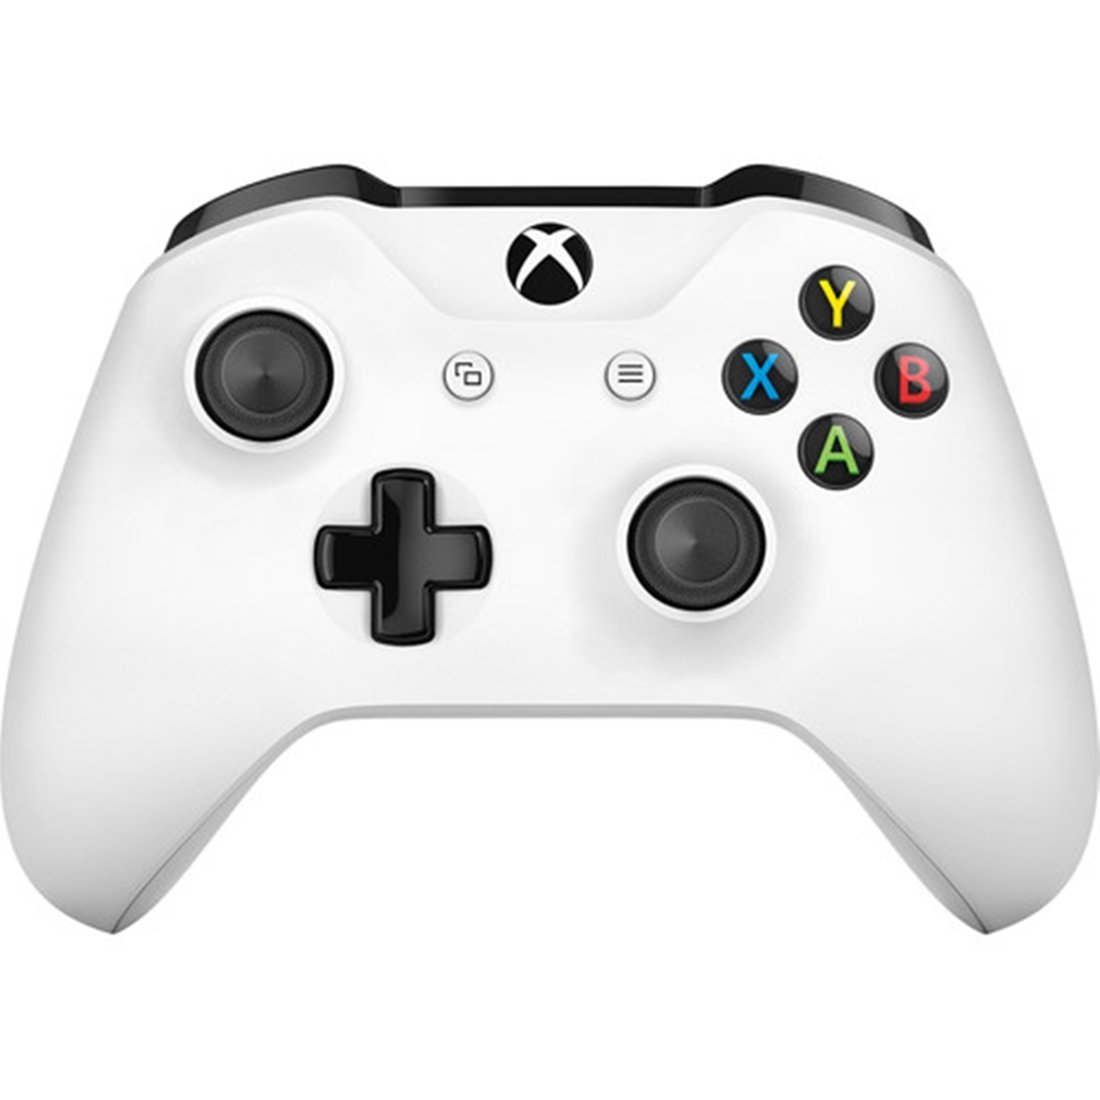 Microsoft Xbox One Wireless Video Gaming Controller, White (Certified Refurbished)